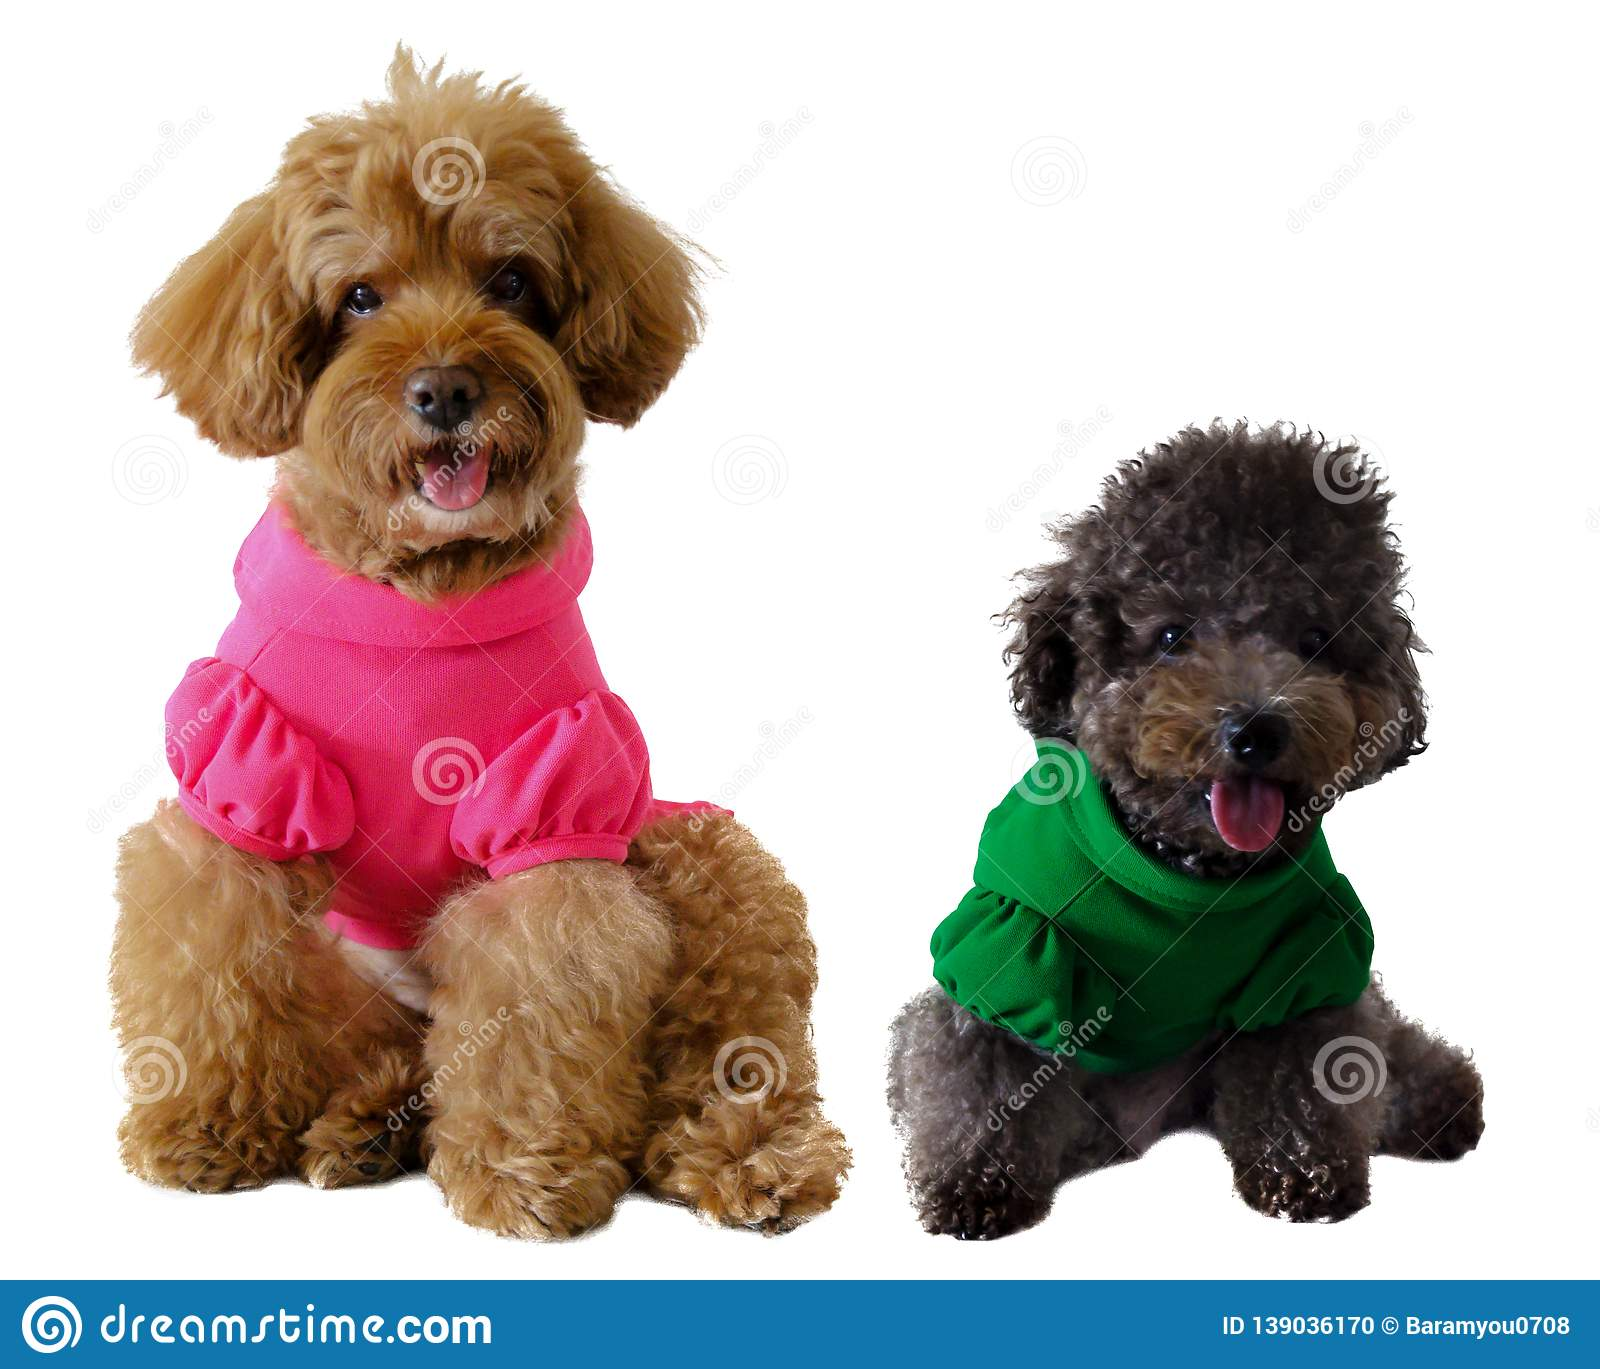 A smiling brown and black poodle dog wearing t-shirt and sitting together.